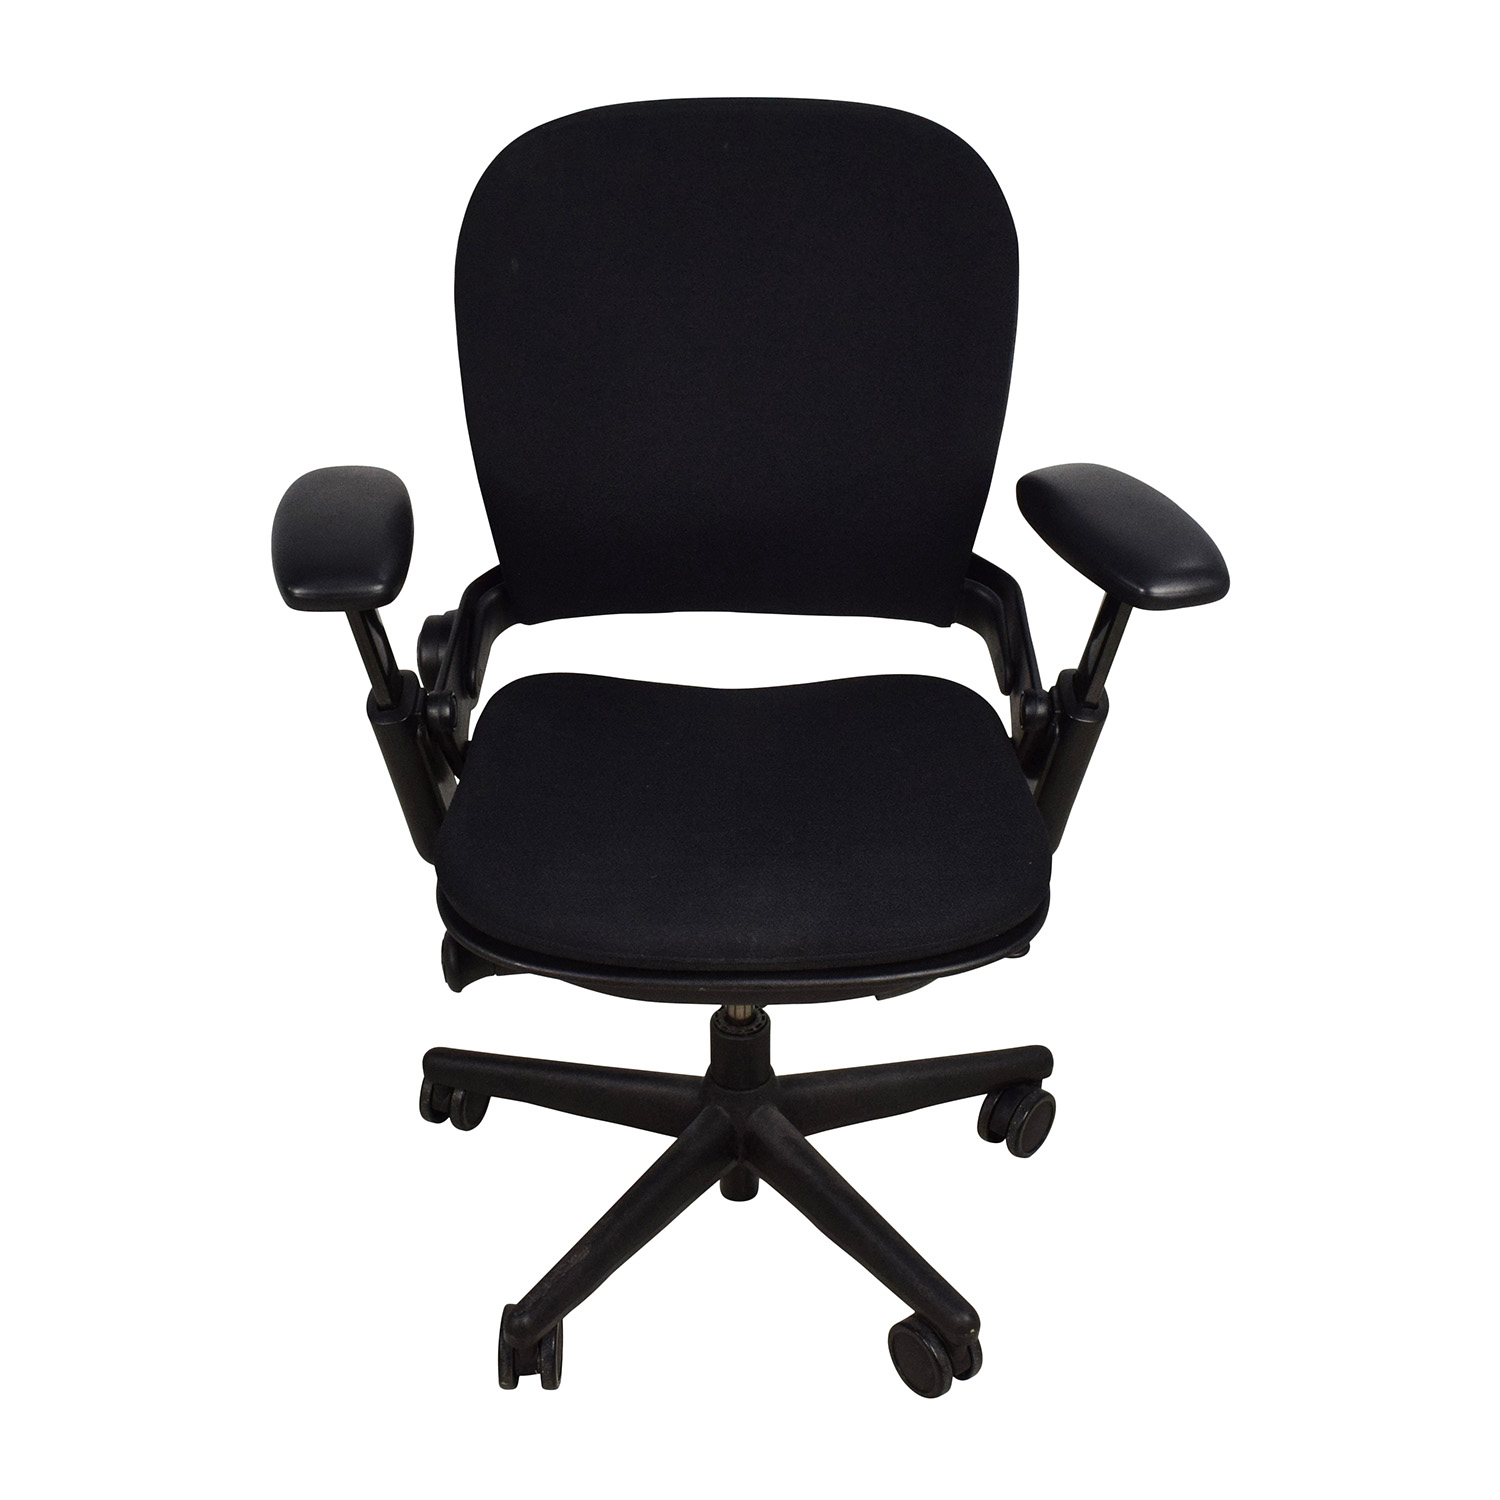 Adjustable Black Office Desk Chair price